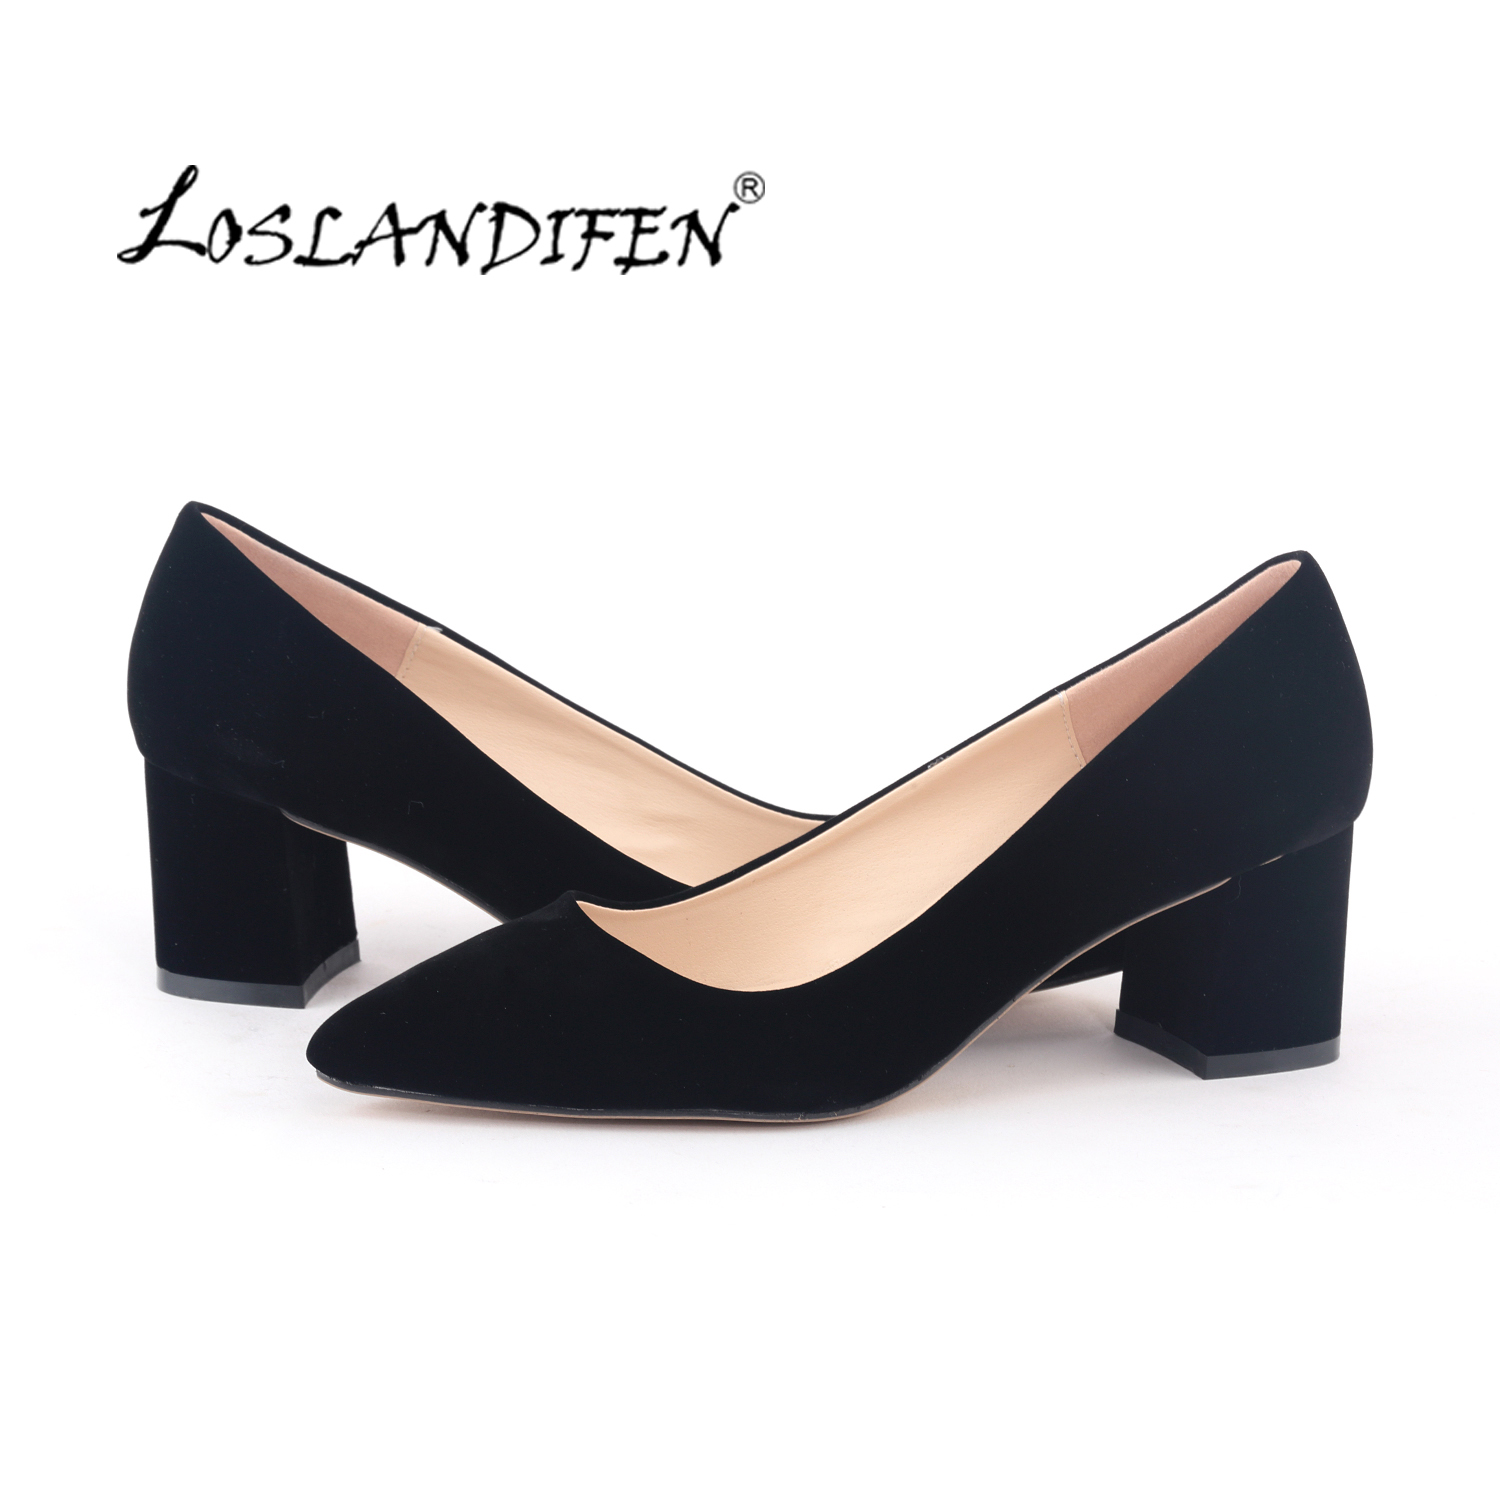 185fa5be3b LOSLANDIFEN Black Velvet Thick High Heels Shoes Fashion Wedges Autume  Office Pumps Pointed Toe Boat Shoes for Woman 0698-1VE